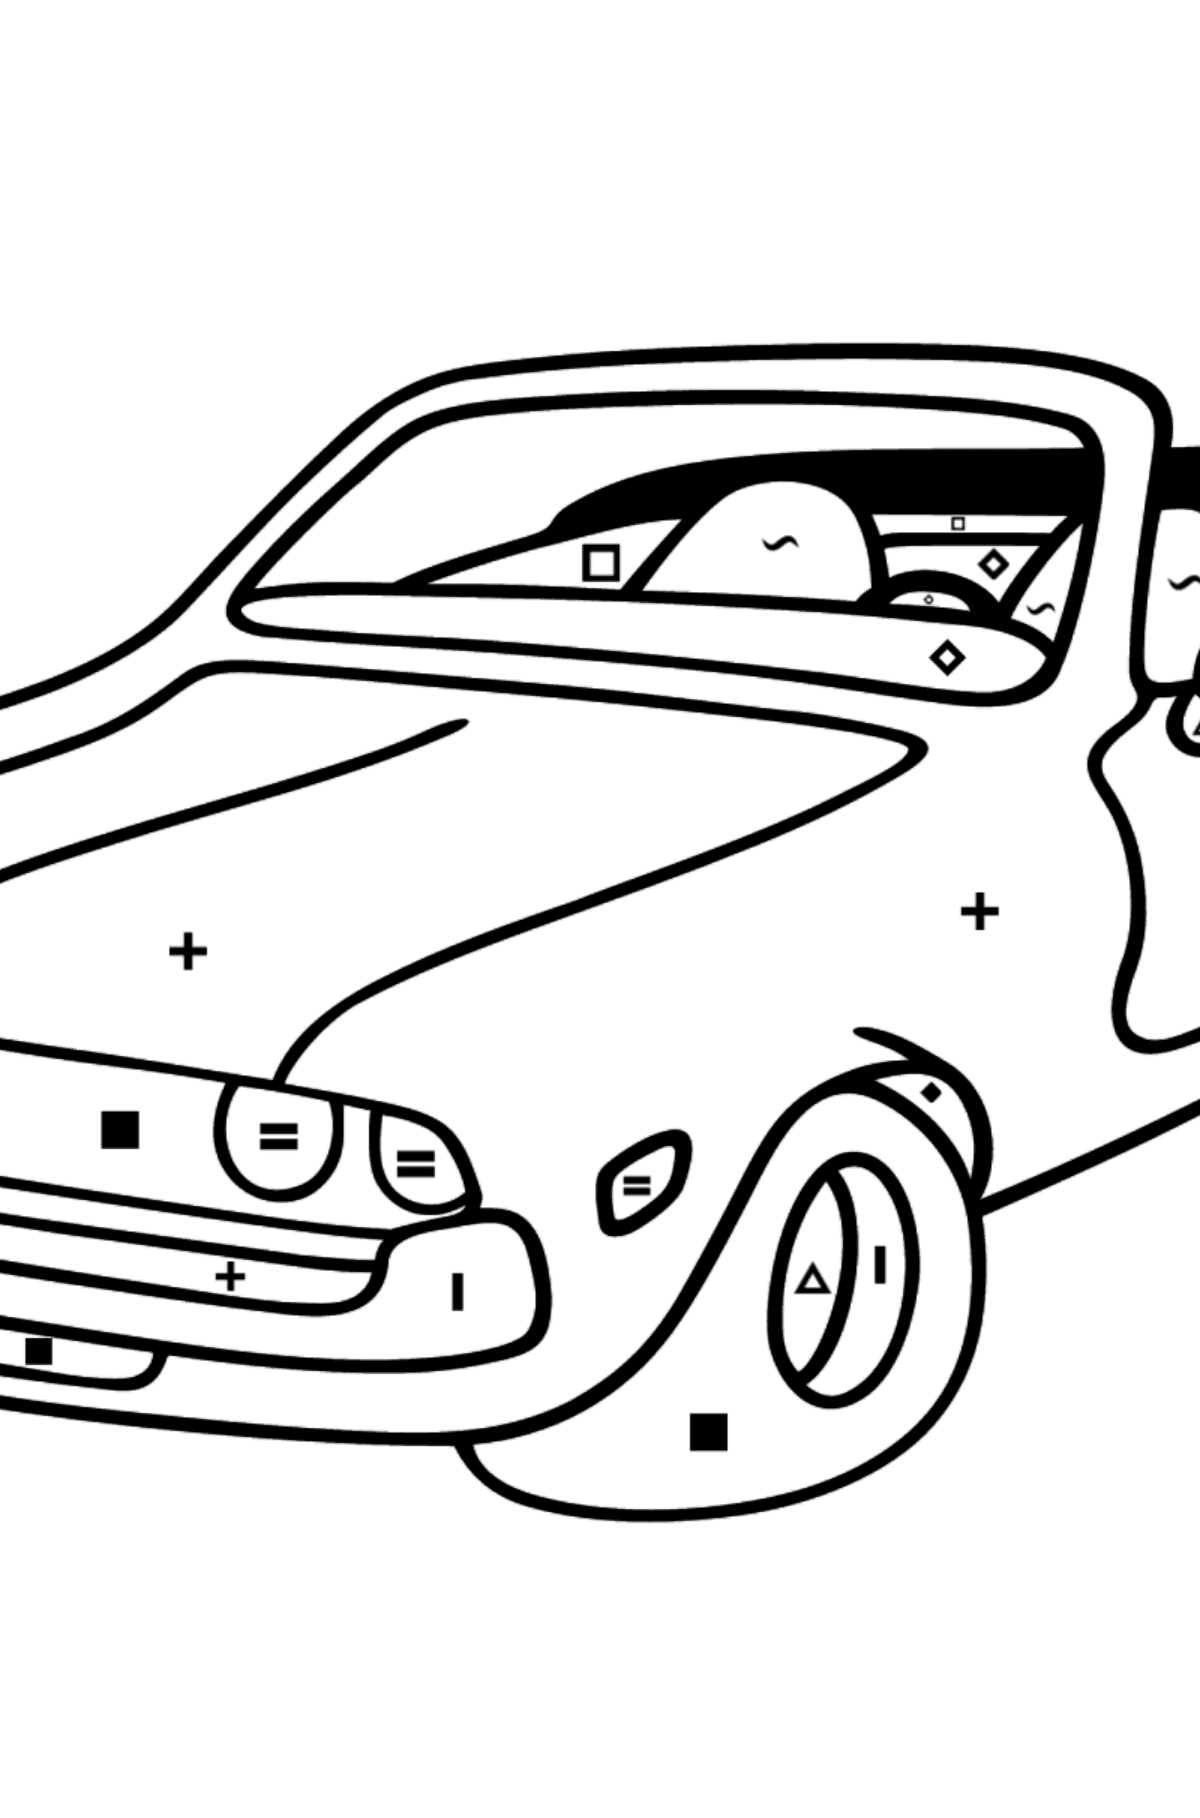 Open Top Cars coloring page - Coloring by Symbols for Kids